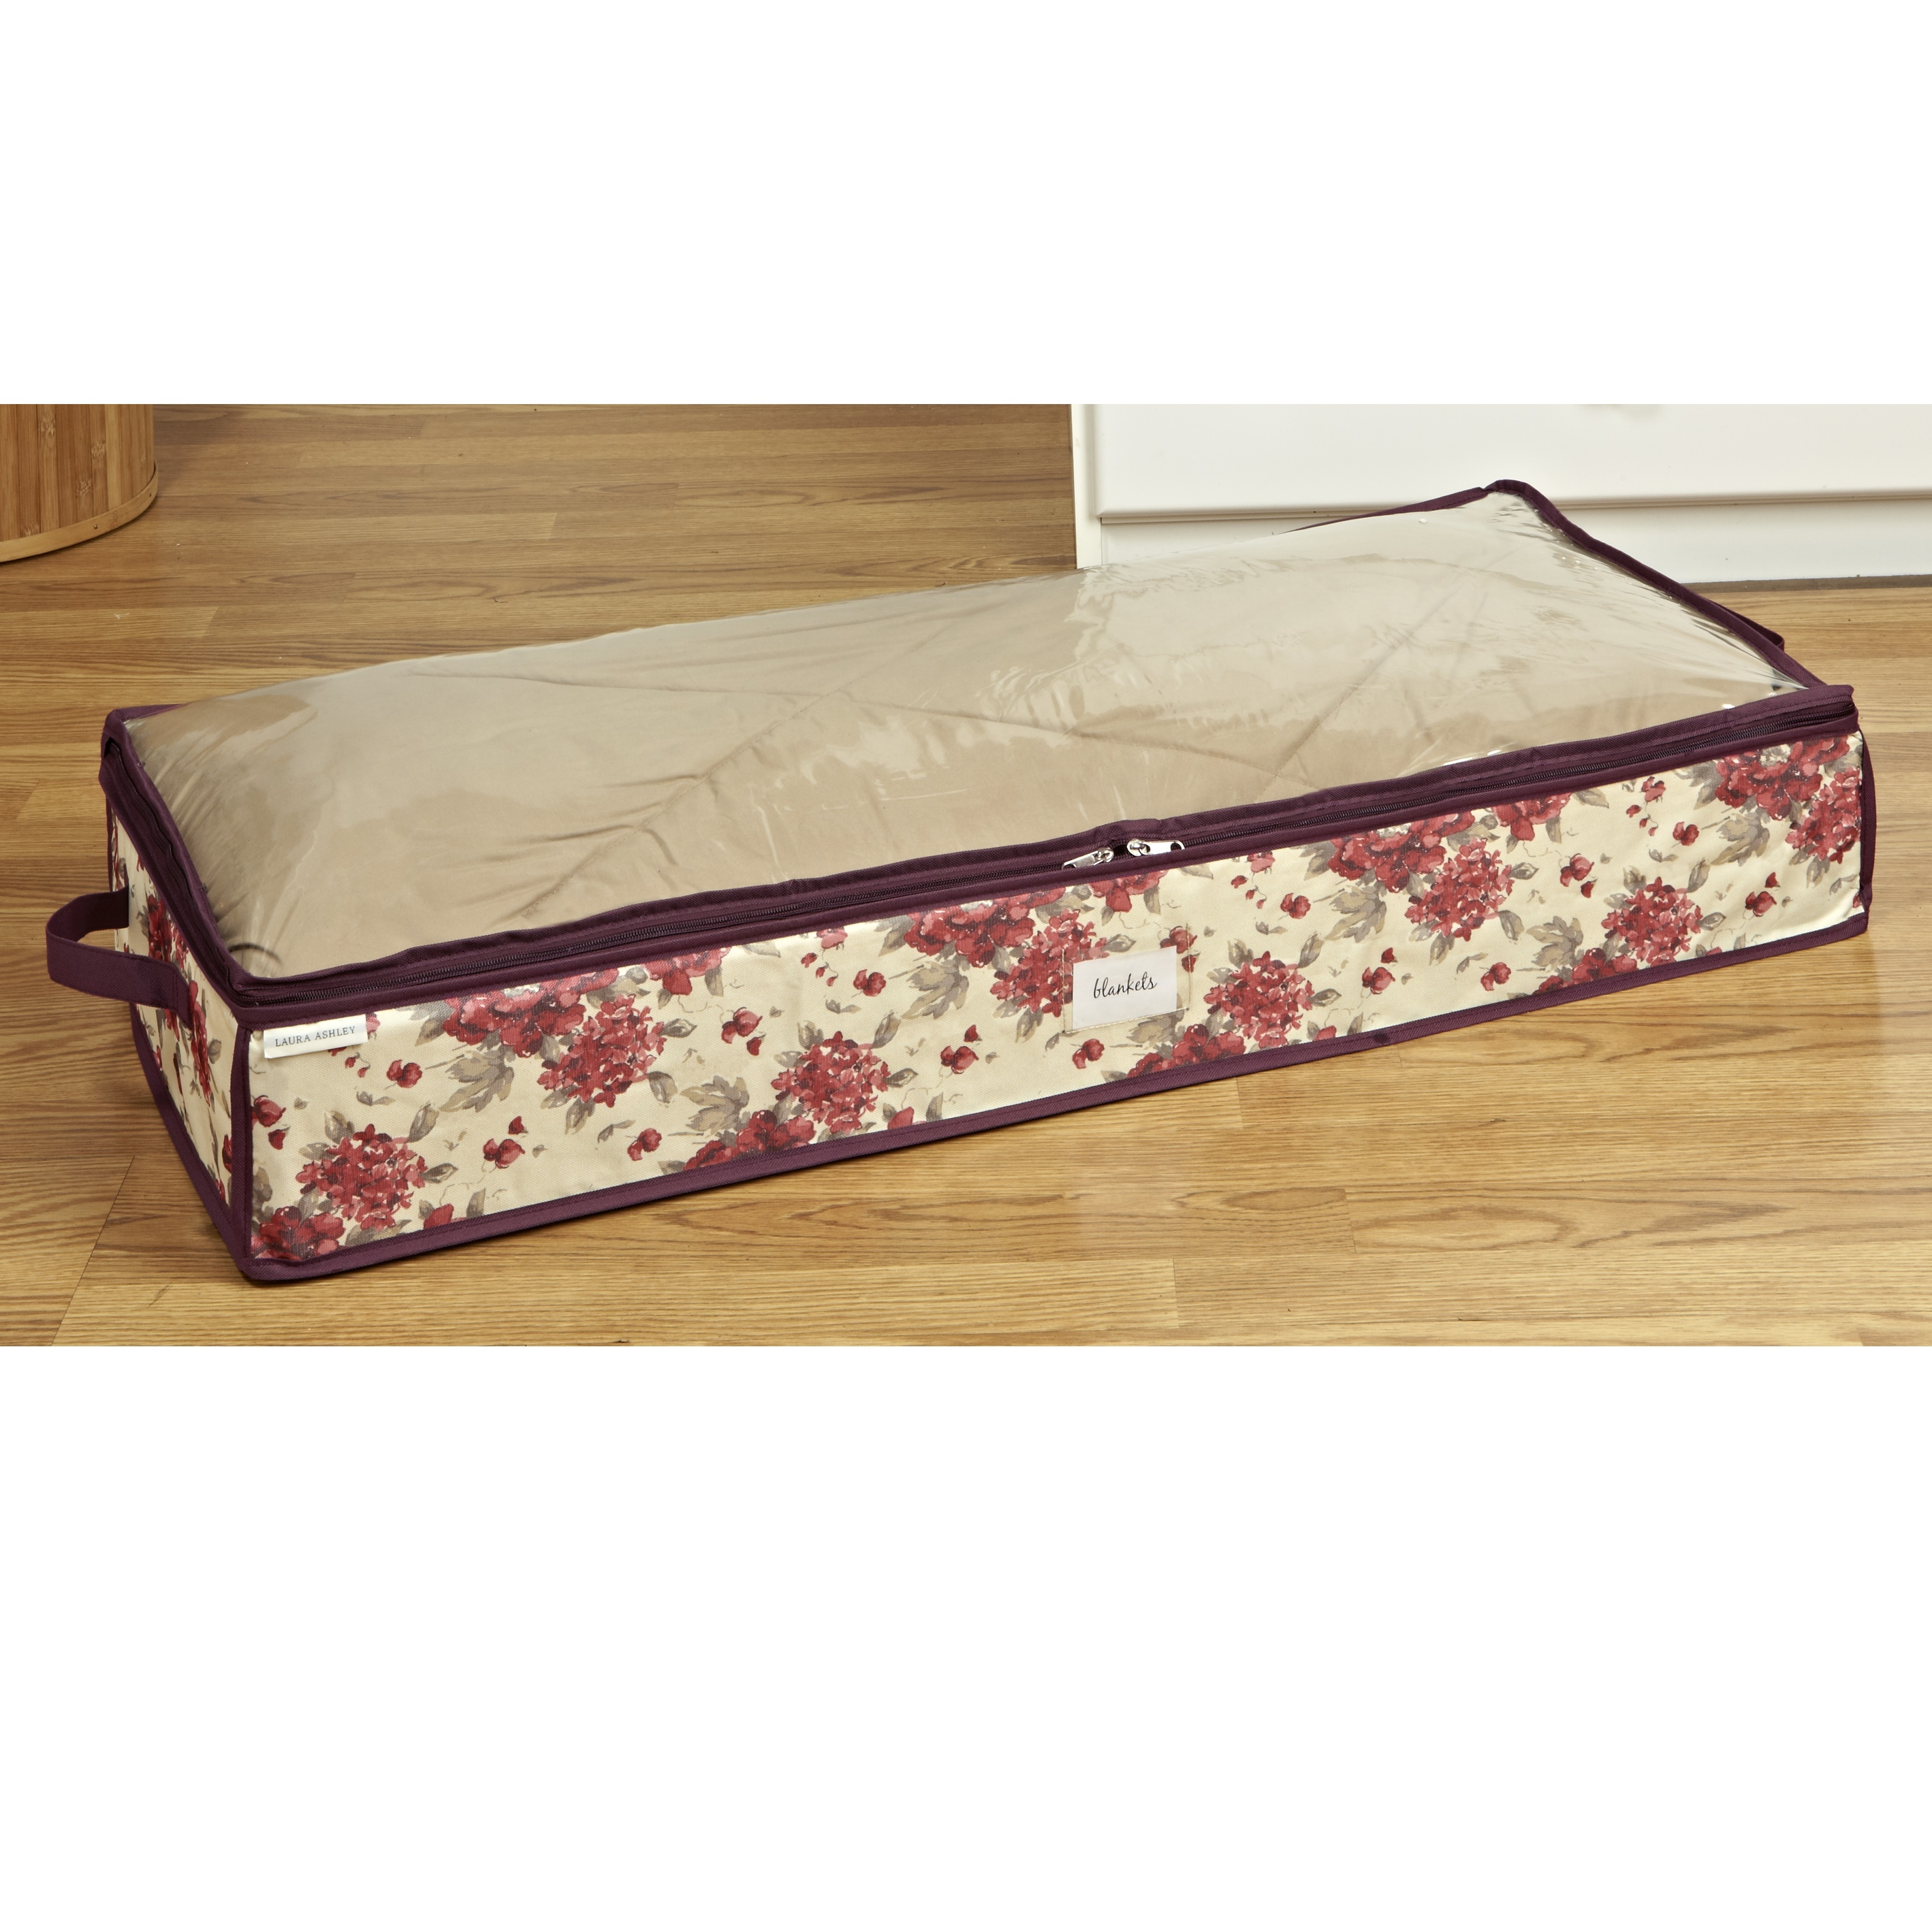 Laura Ashley 'Milner' Underbed Storage Bag at Sears.com